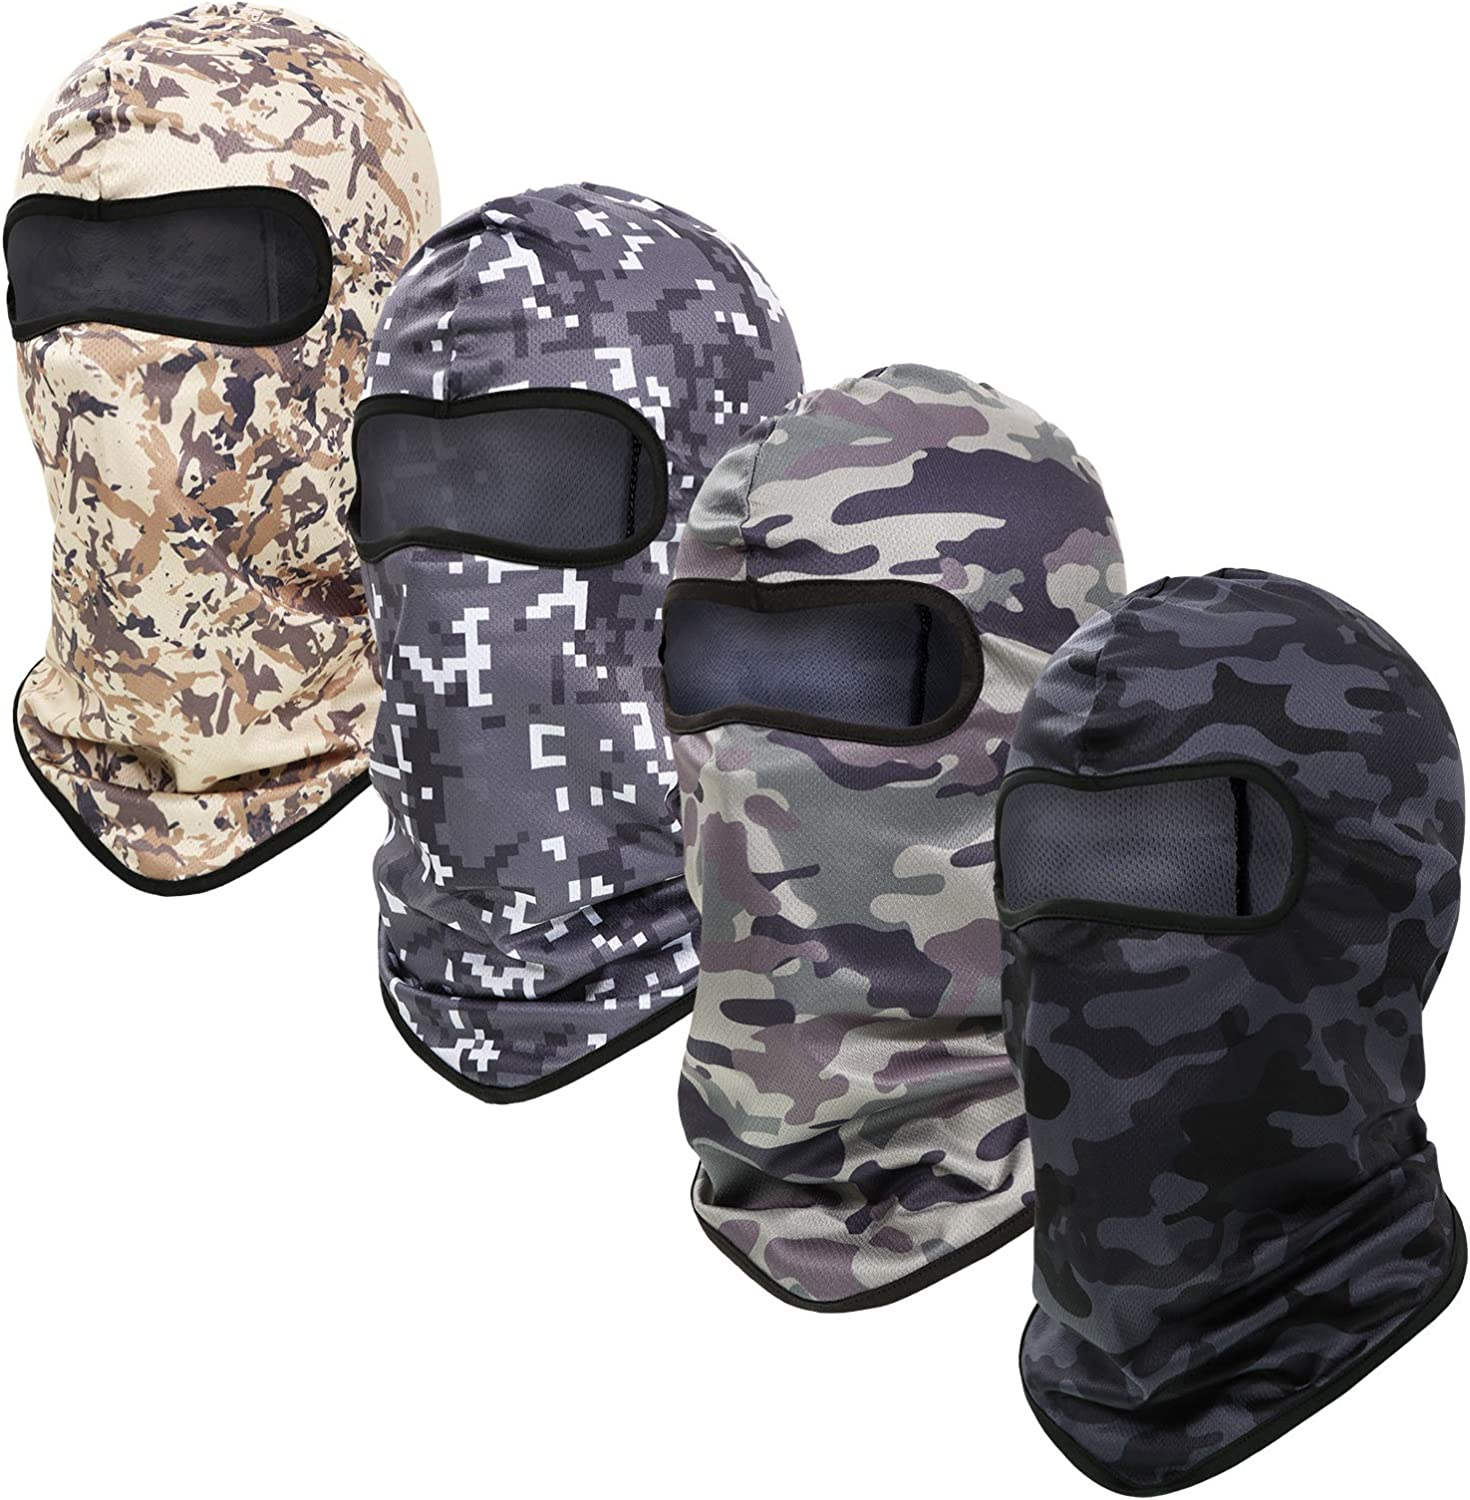 4 Pieces Neck Gaiter Face Covers Balaclava UV Sun Protection Face Cover Scarf Non-Slip Breathable Face Clothing for Outdoor Sports